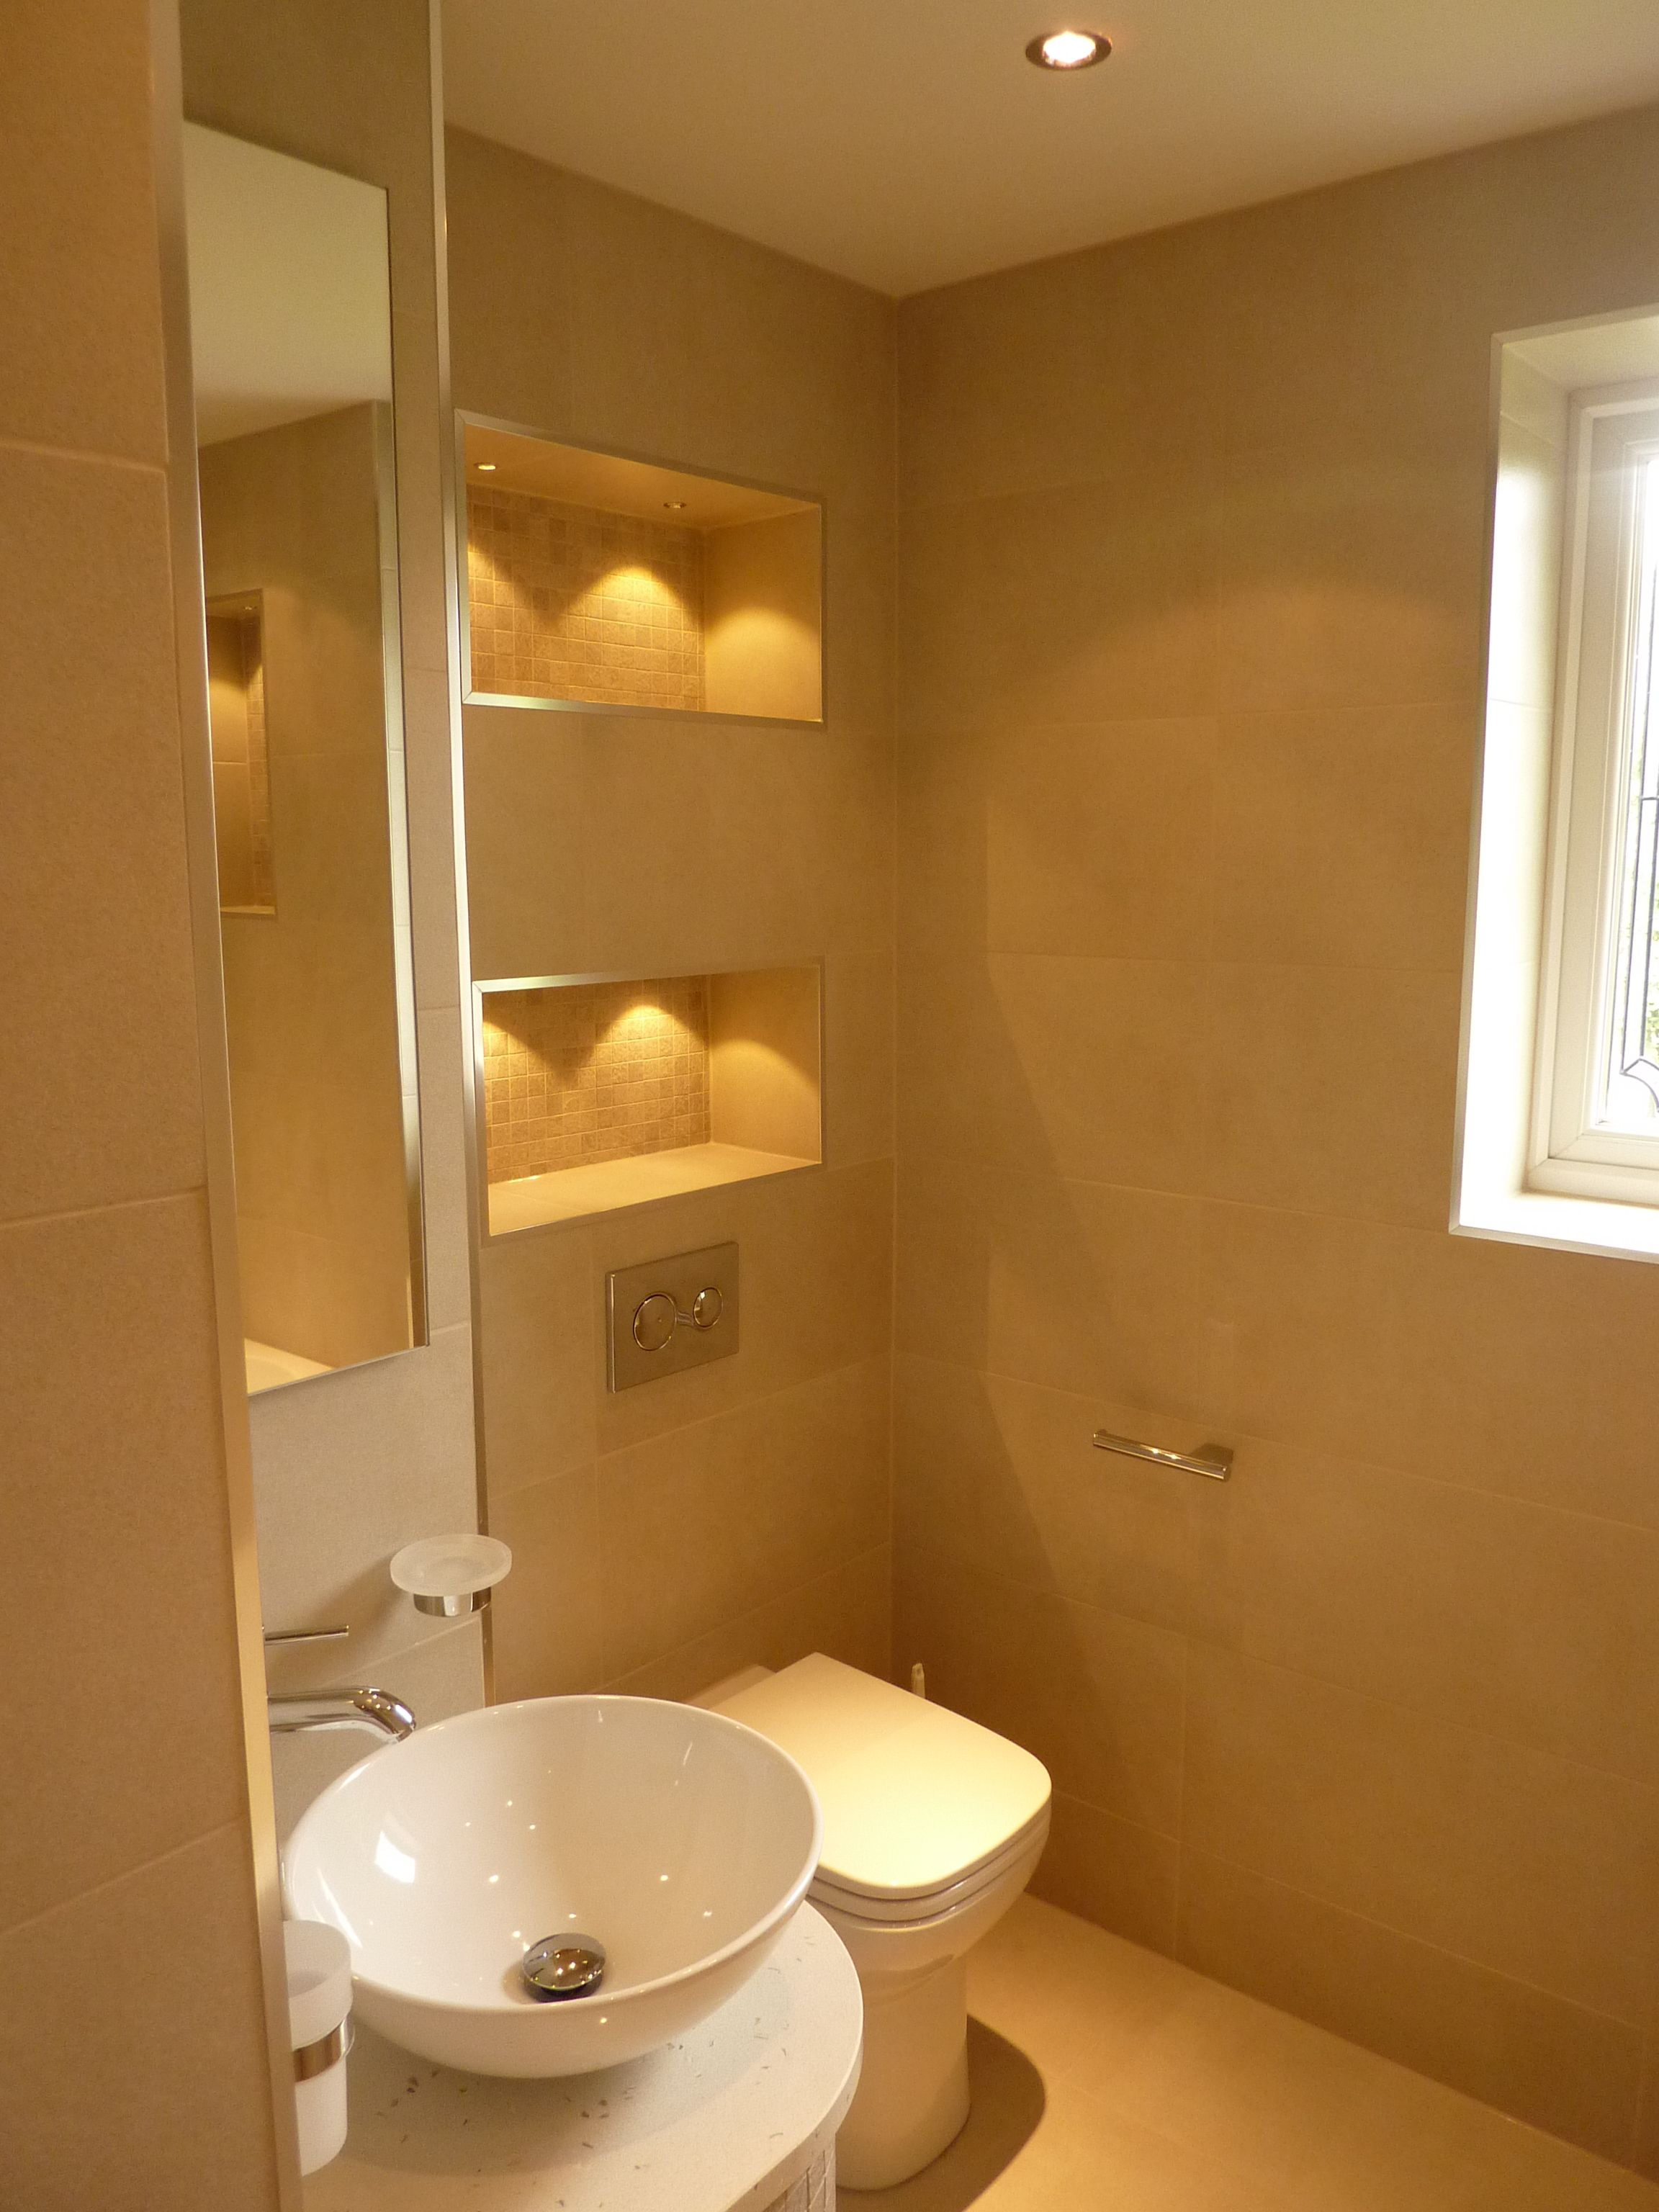 Contemporary Cloakroom Powder Room Great To Find Recessed Niches With Lighting To Add Interest To This Functionale